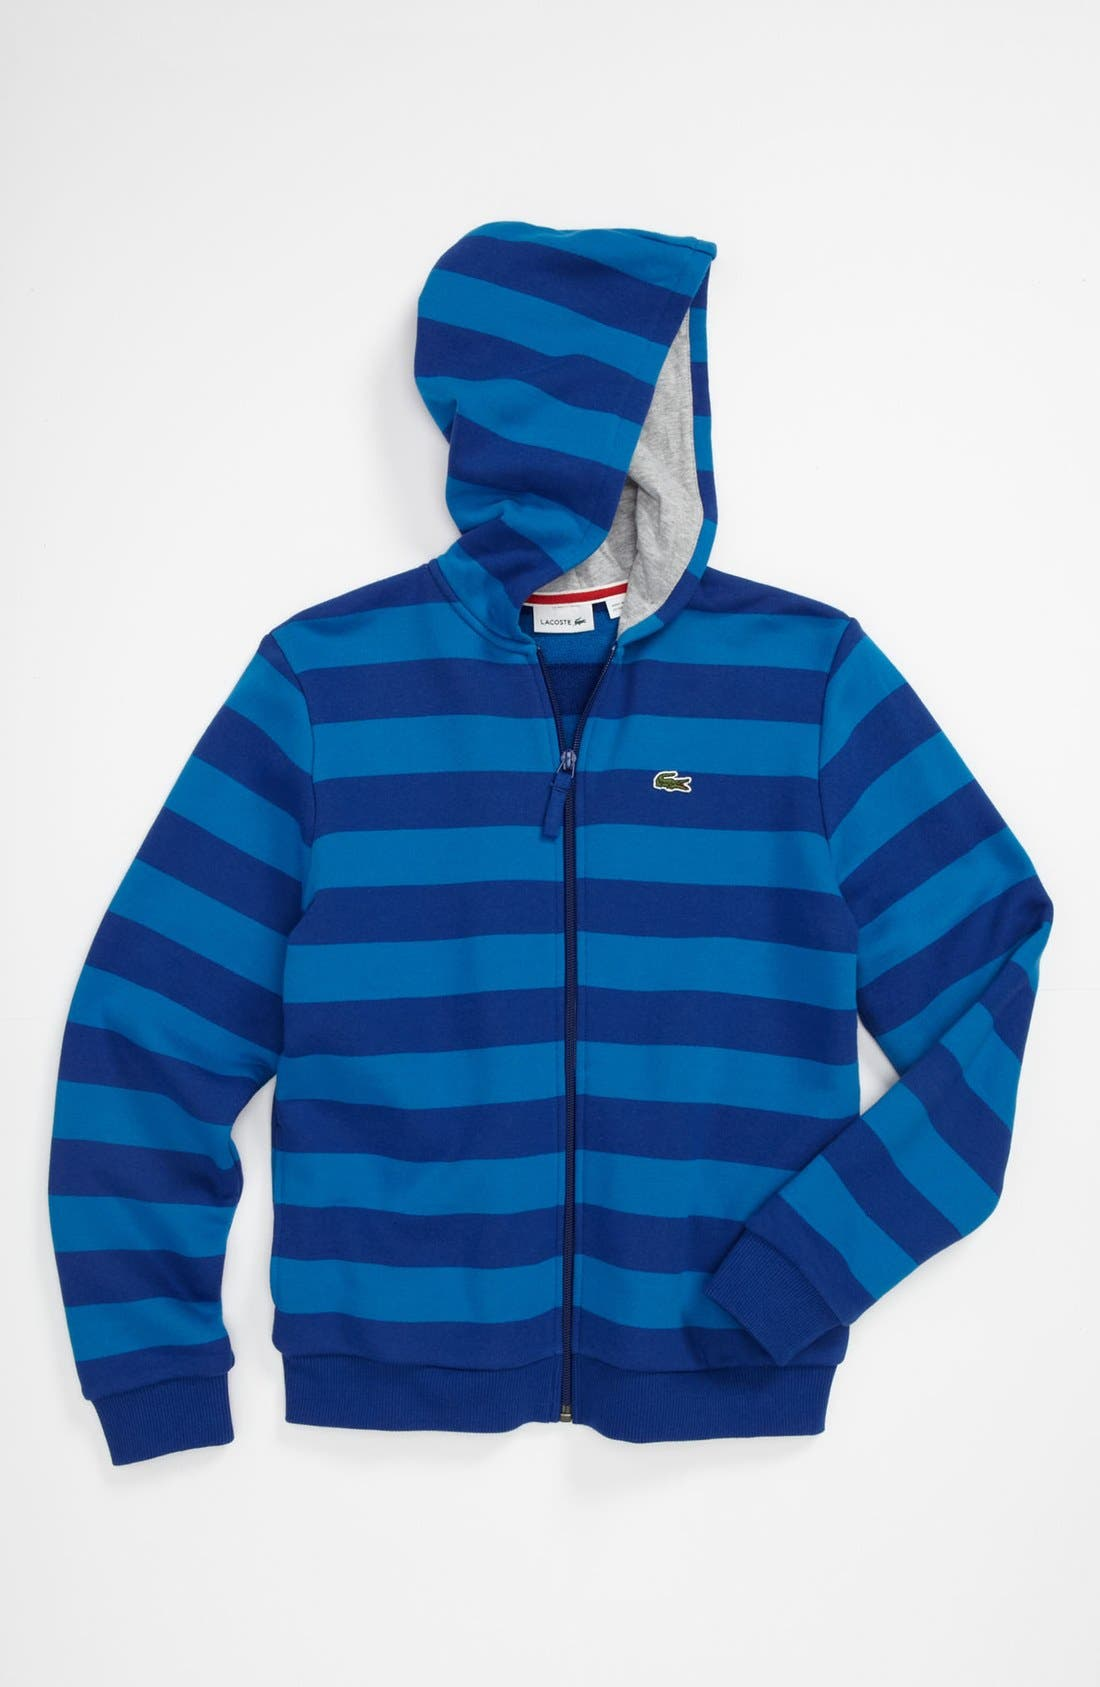 Alternate Image 1 Selected - Lacoste Stripe Sweatshirt (Big Boys)